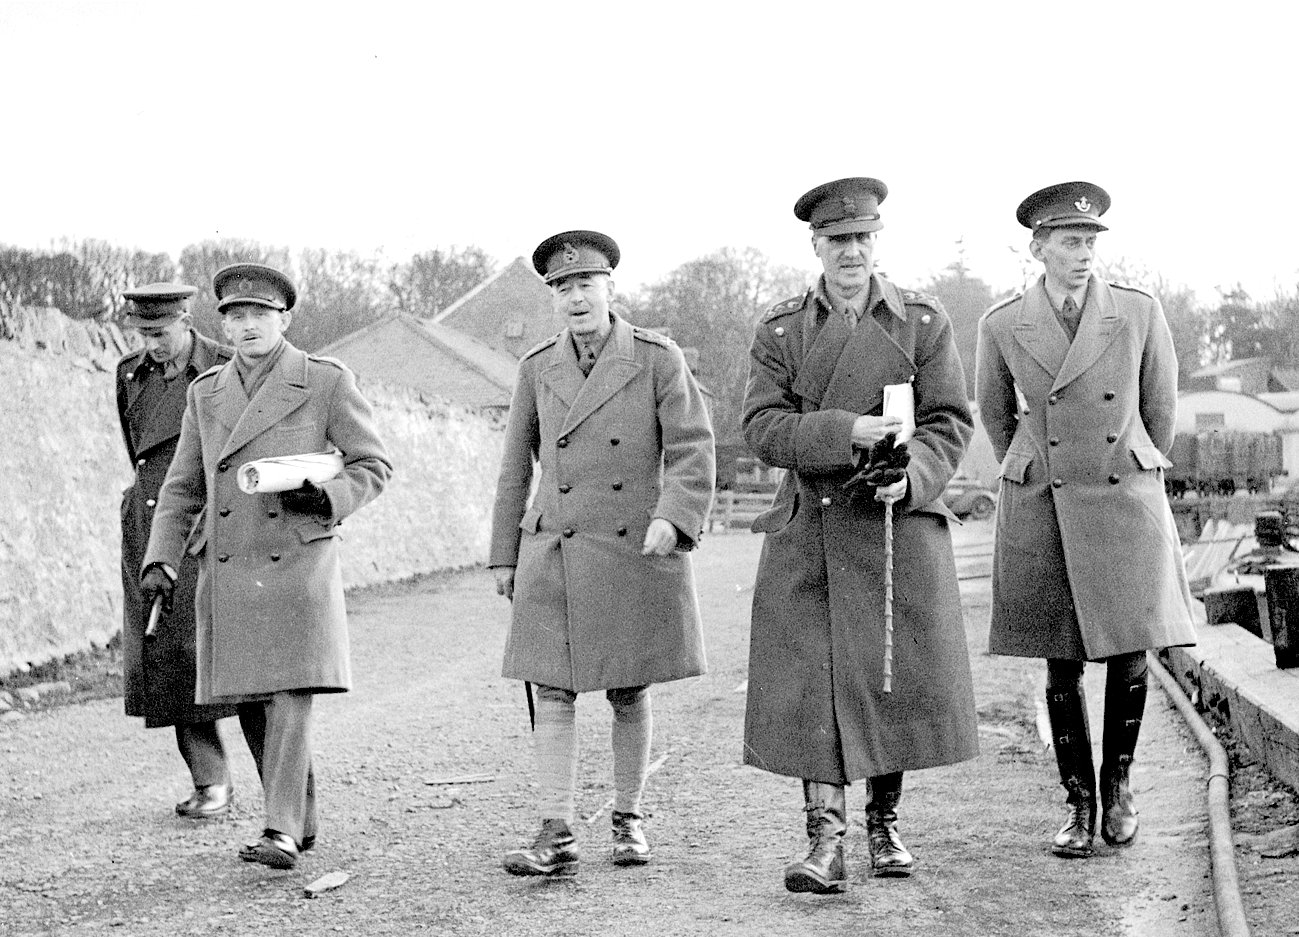 Garlieston Mulberry Harbour trials: Major Carline, Major. Steer-Webster, QMG Thomas Riddell-Webster, Brigadier Sir Bruce White arriving at Garlieston Harbour, 13th March 1943